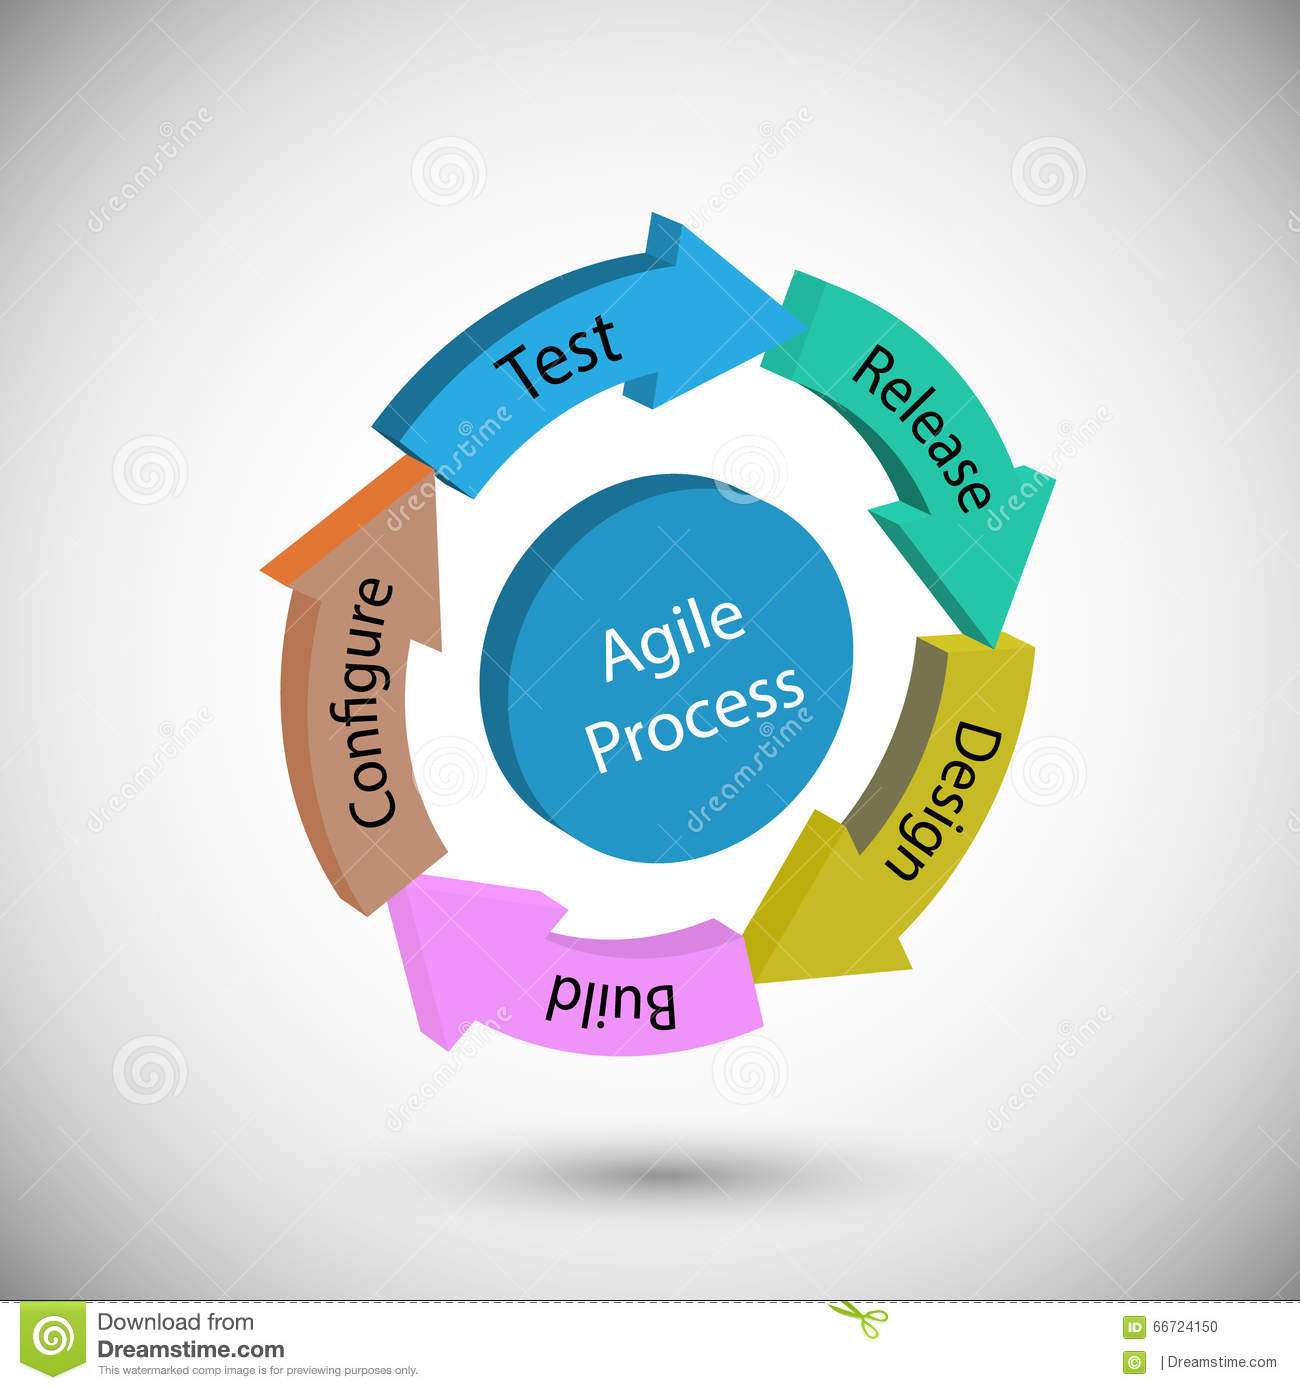 Concept Of Software Development Life Cycle And Agile Methodology.